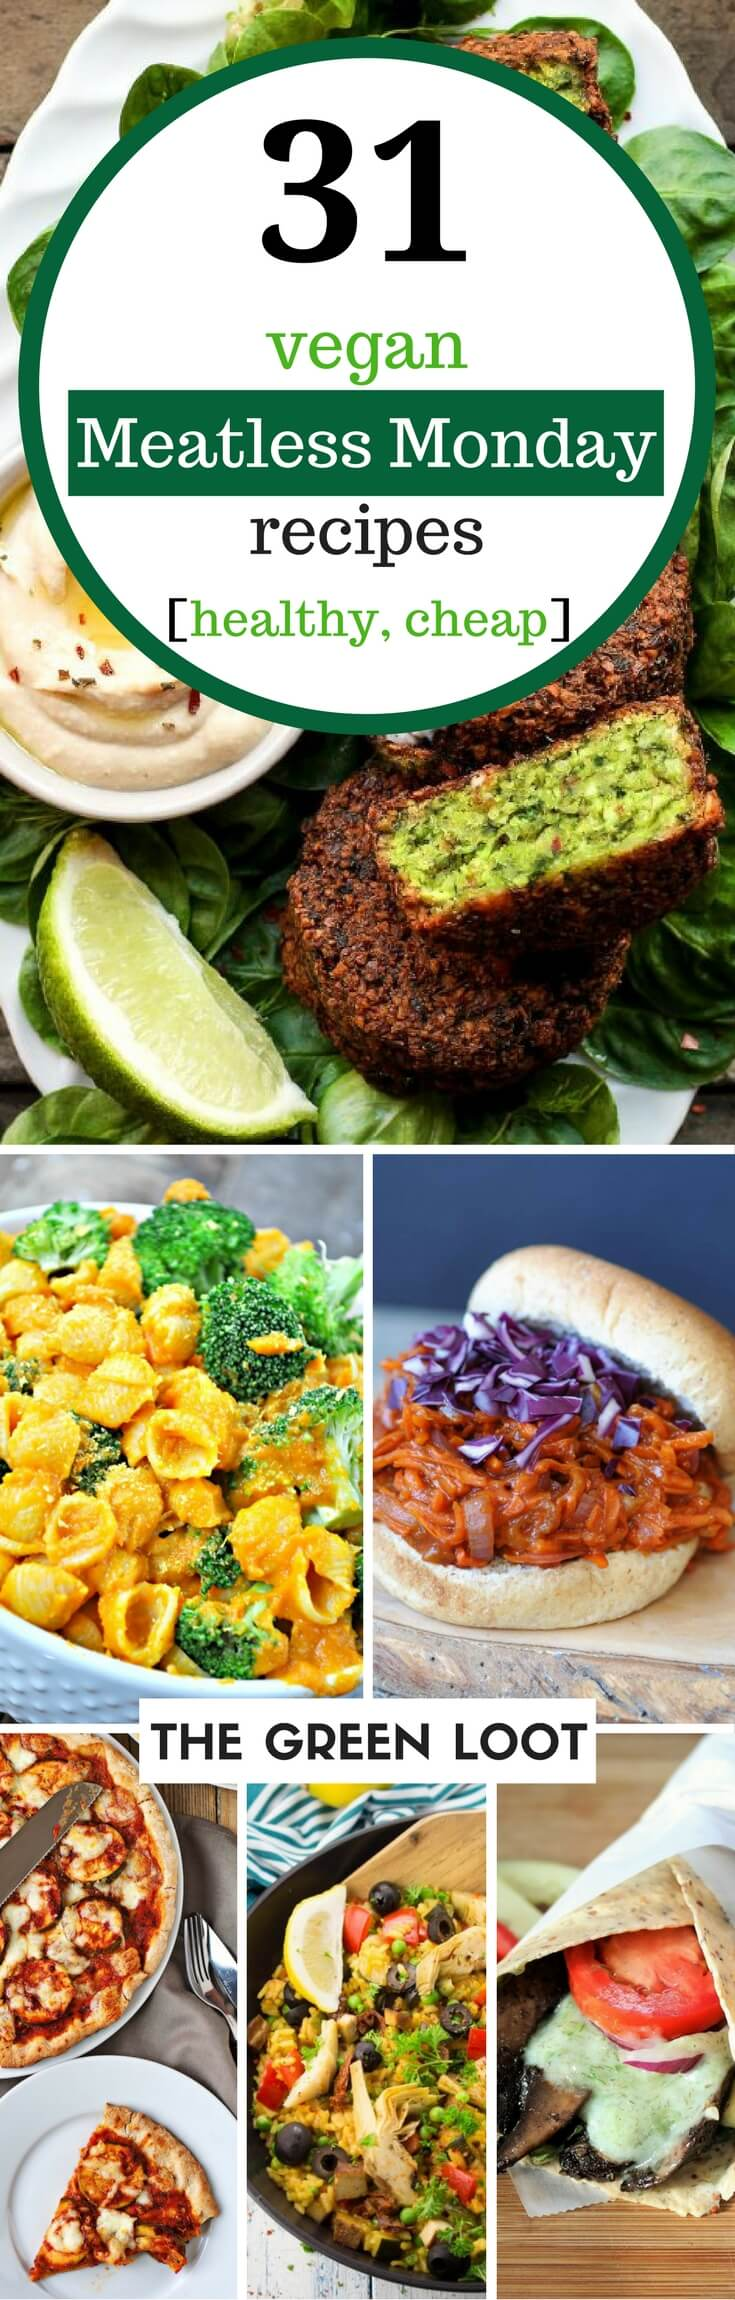 Vegan Meatless Monday recipes for a healthy lunch and dinner. Make these easy, cheap, and protein filled soup, pasta and other type of dishes for a filling plant-based meal. | The Green Loot #vegan #MeatlessMonday #dairyfree